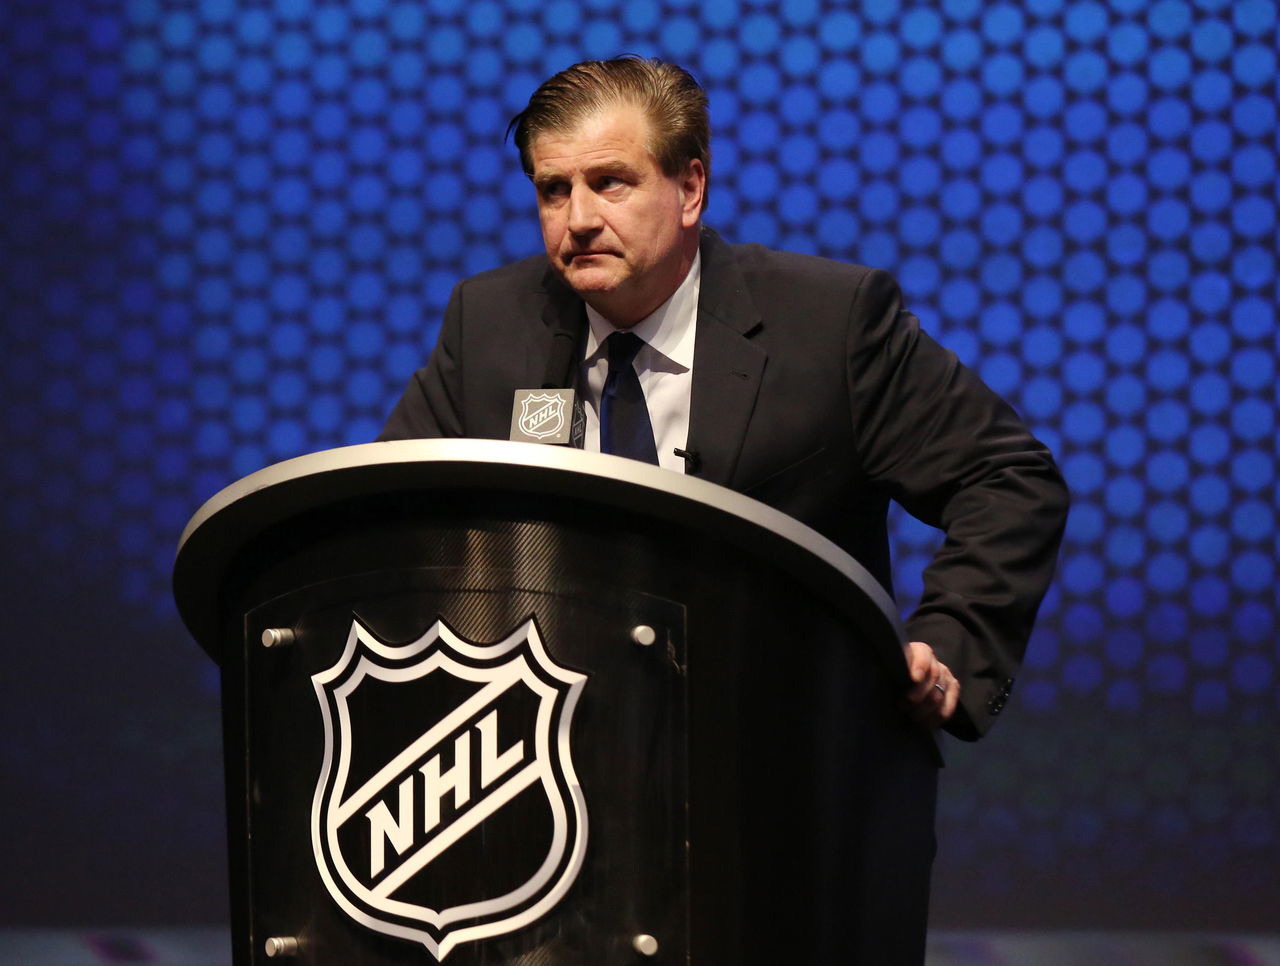 Sports_Jim Benning (GM for Canucks)